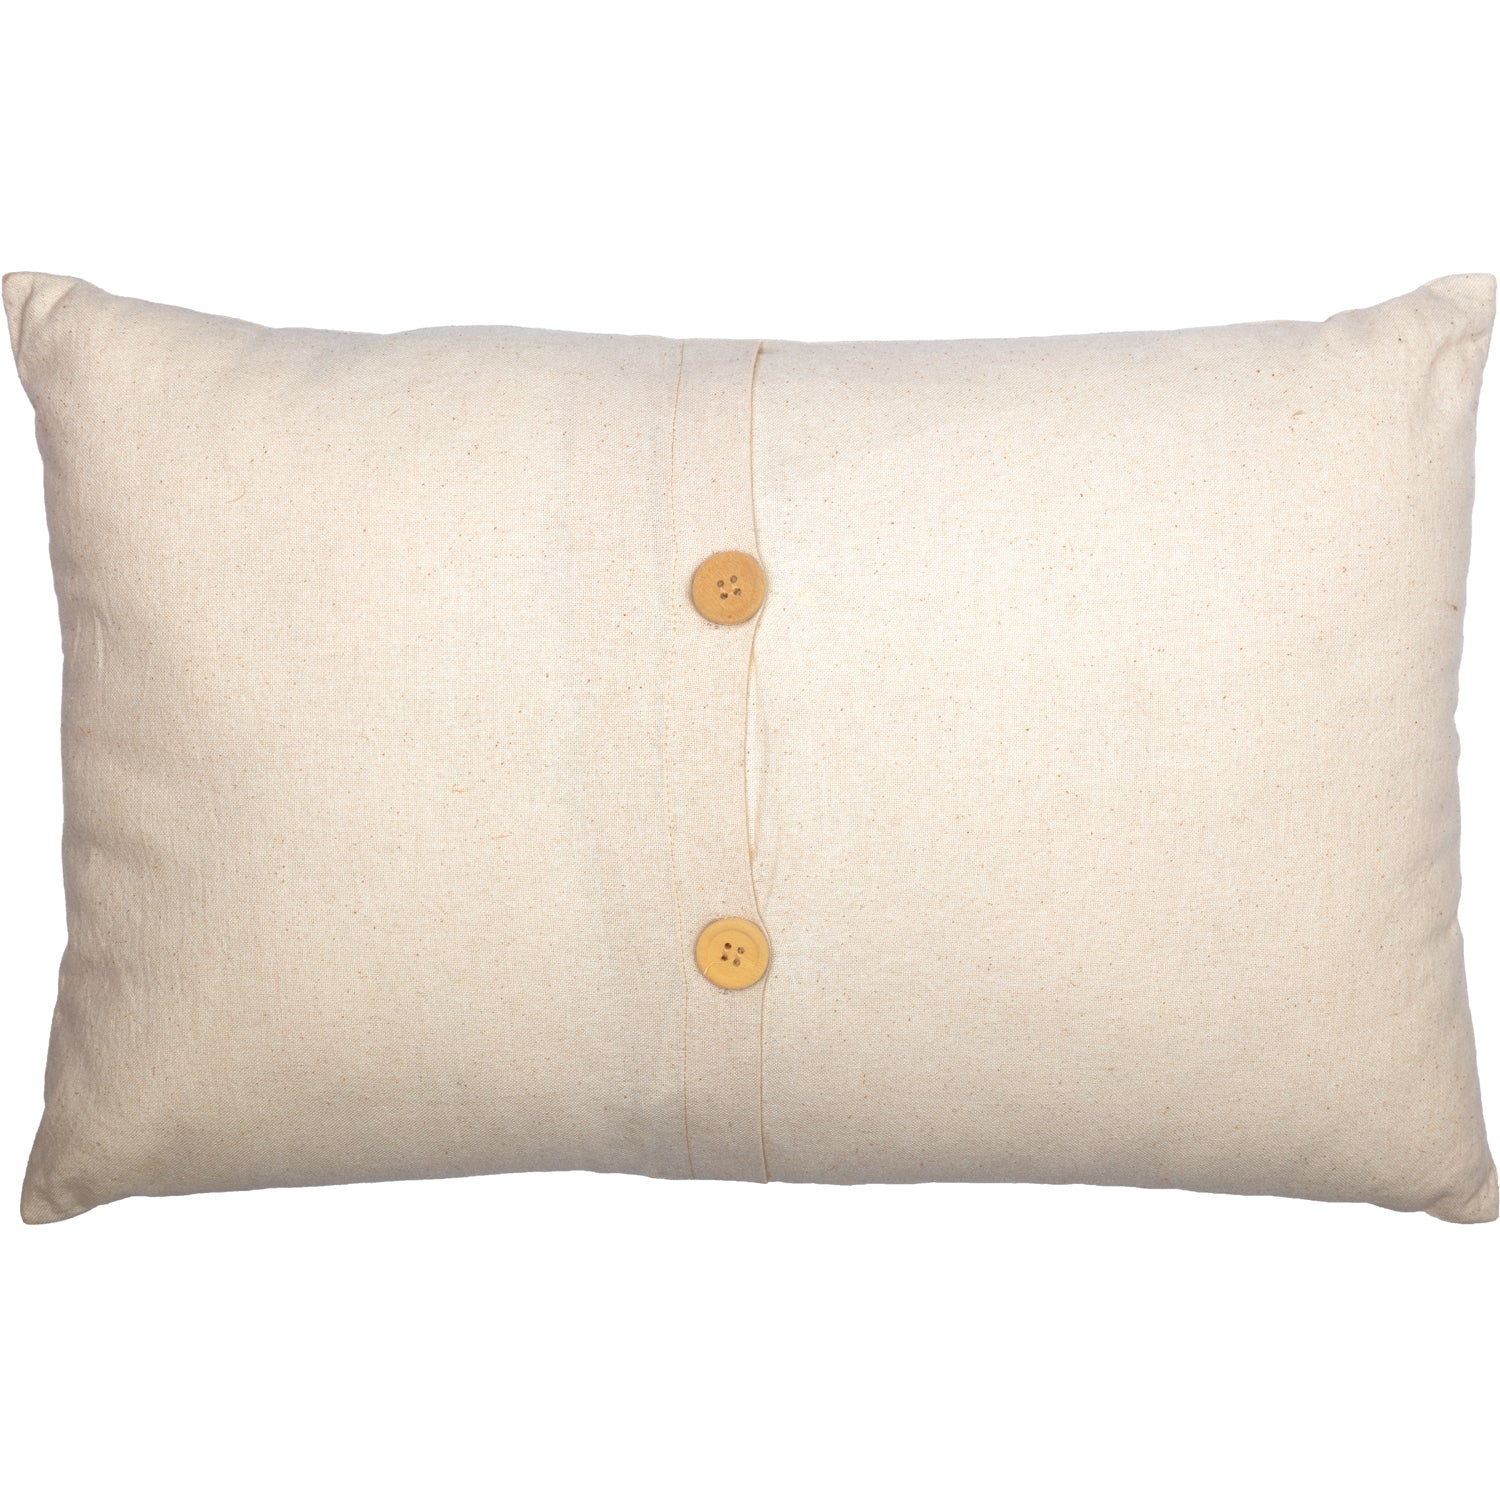 Casement Natural Love You to the Moon and Back Pillow.